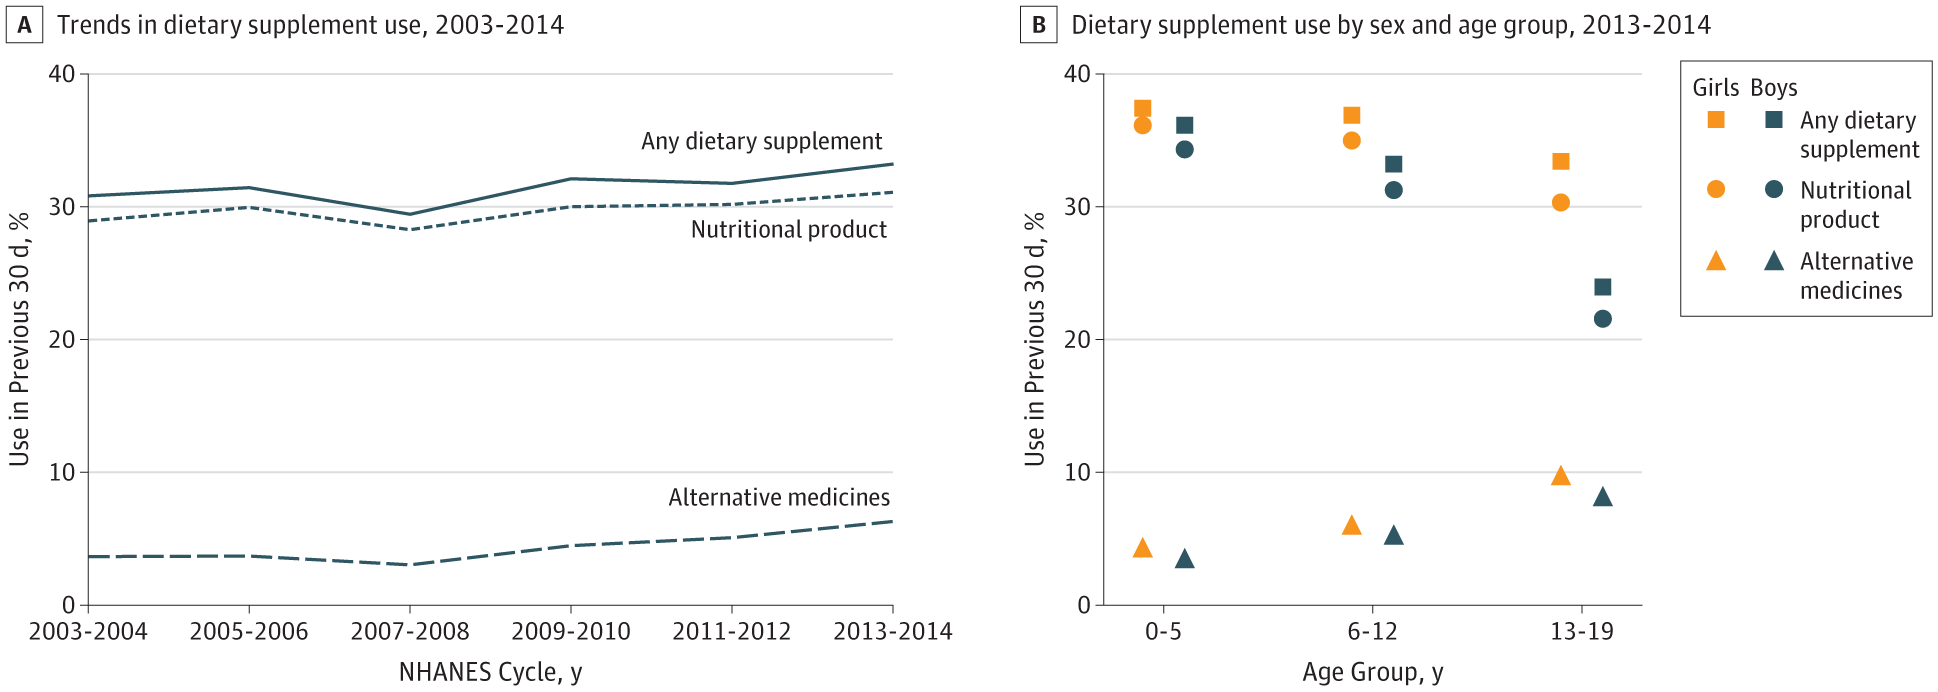 Prevalence of Dietary Supplement Use in US Children and